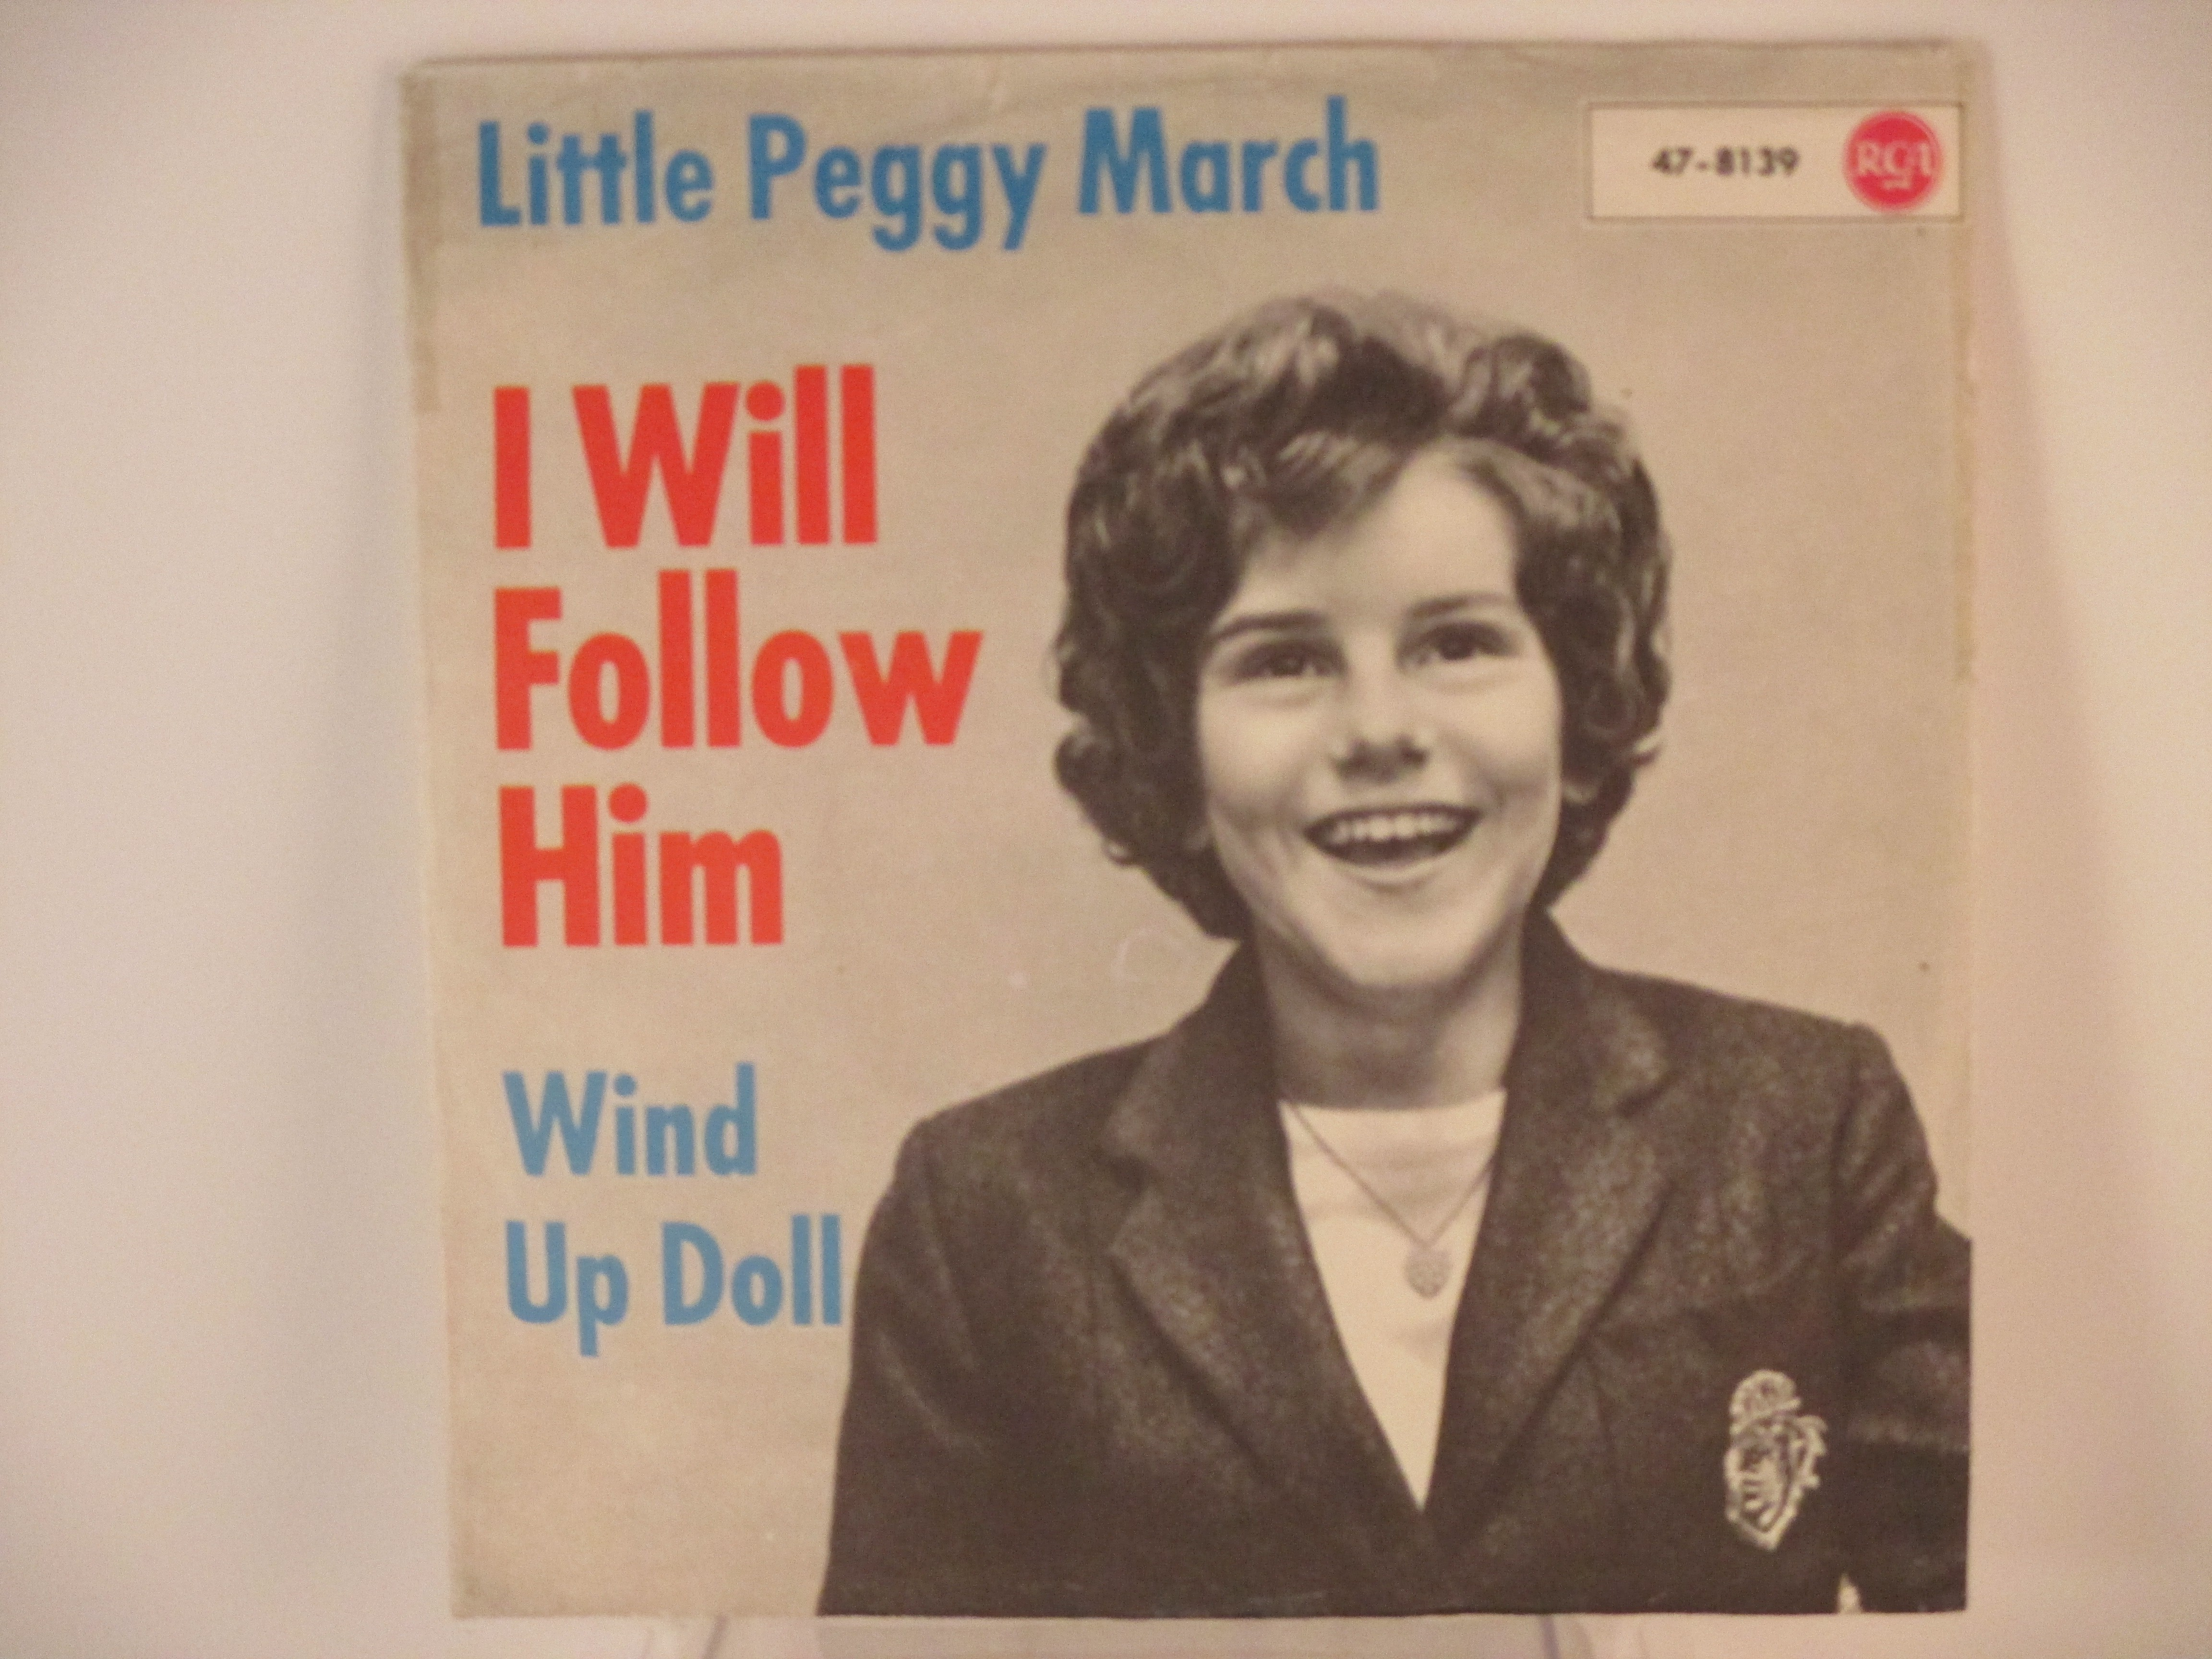 LITTLE PEGGY MARCH : I will follow him / Wind up doll